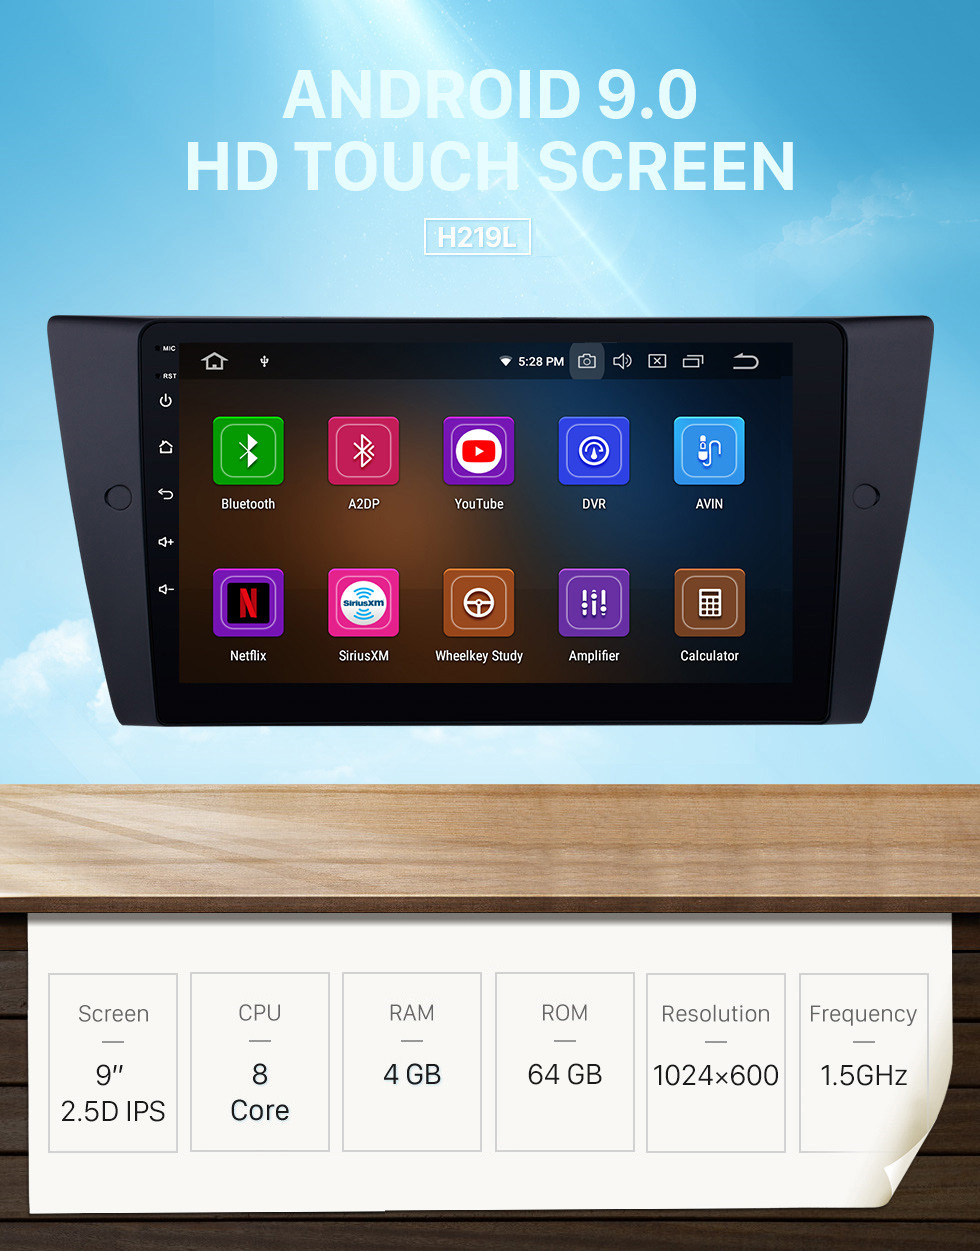 Seicane Android 9.0 Car DVD player for 2005-2012 BMW 3 Series E90 E91 E92 E93 316i 318i 320i 320si 323i 325i 328i 330i 335i 335is M3 316d 318d 320d 325d 330d 335d with gps radio tv bluetooth support DVR